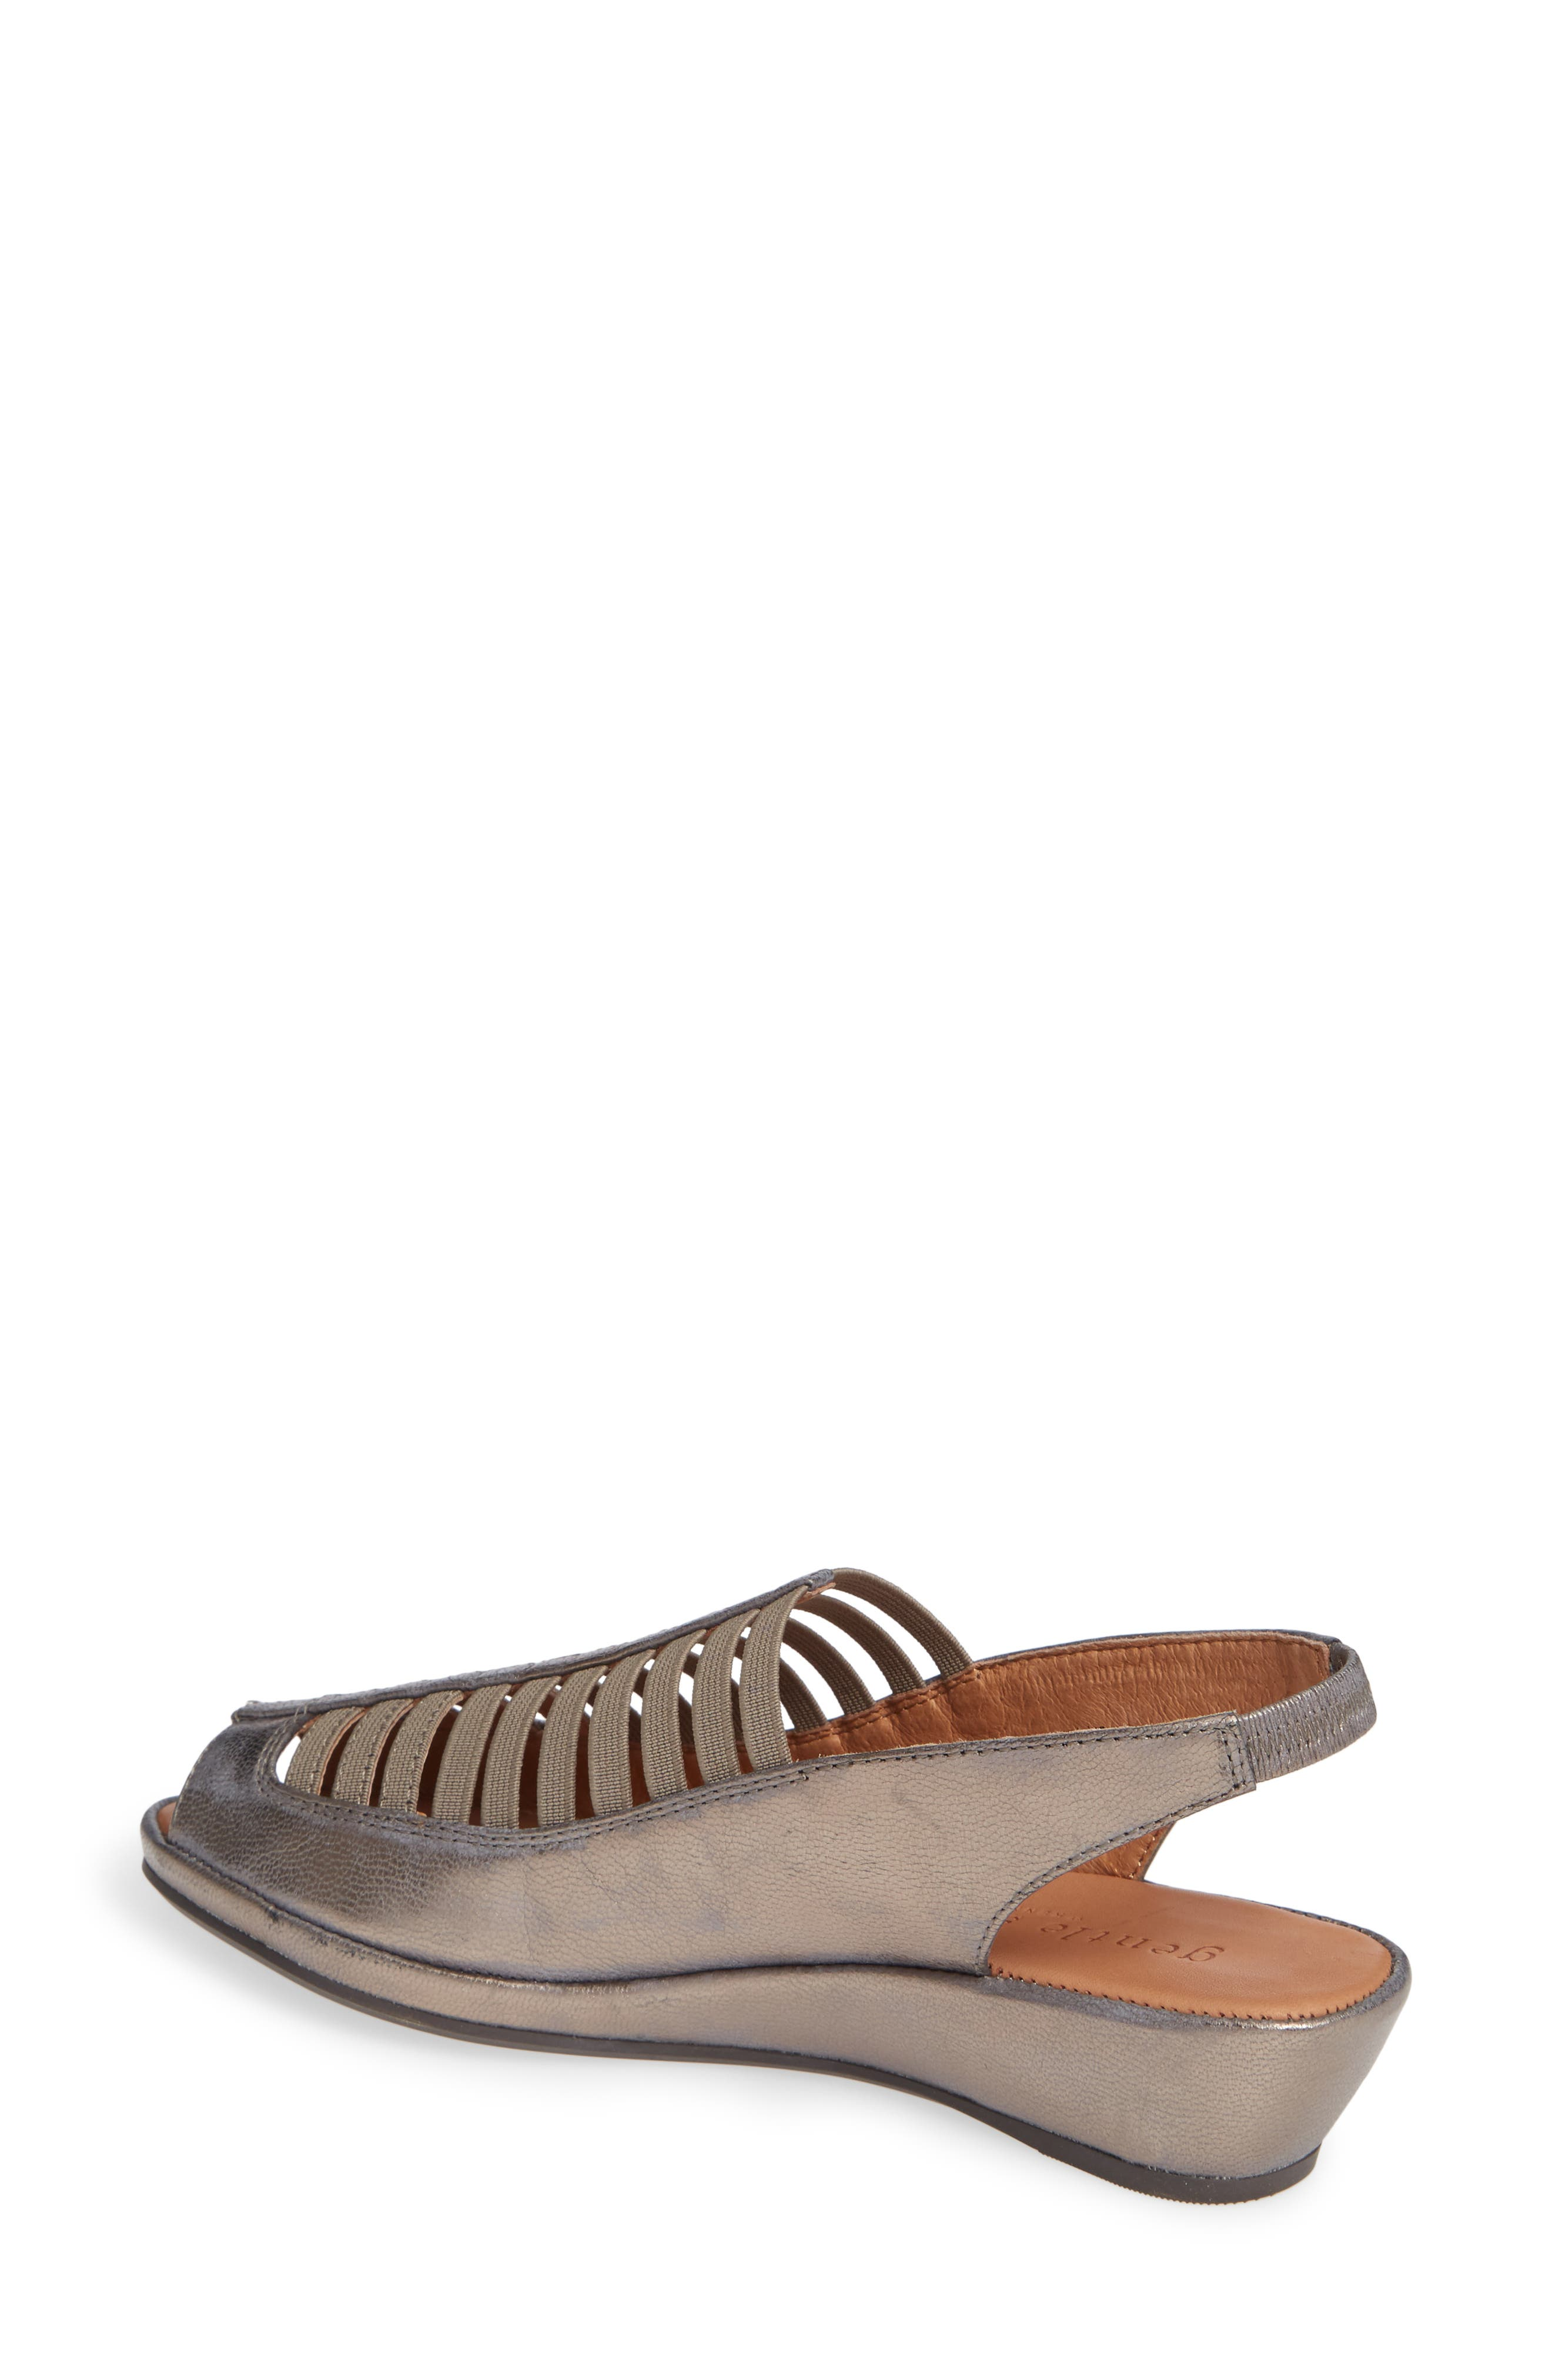 GENTLE SOULS BY KENNETH COLE, 'Lee' Sandal, Alternate thumbnail 2, color, PEWTER METALLIC LEATHER